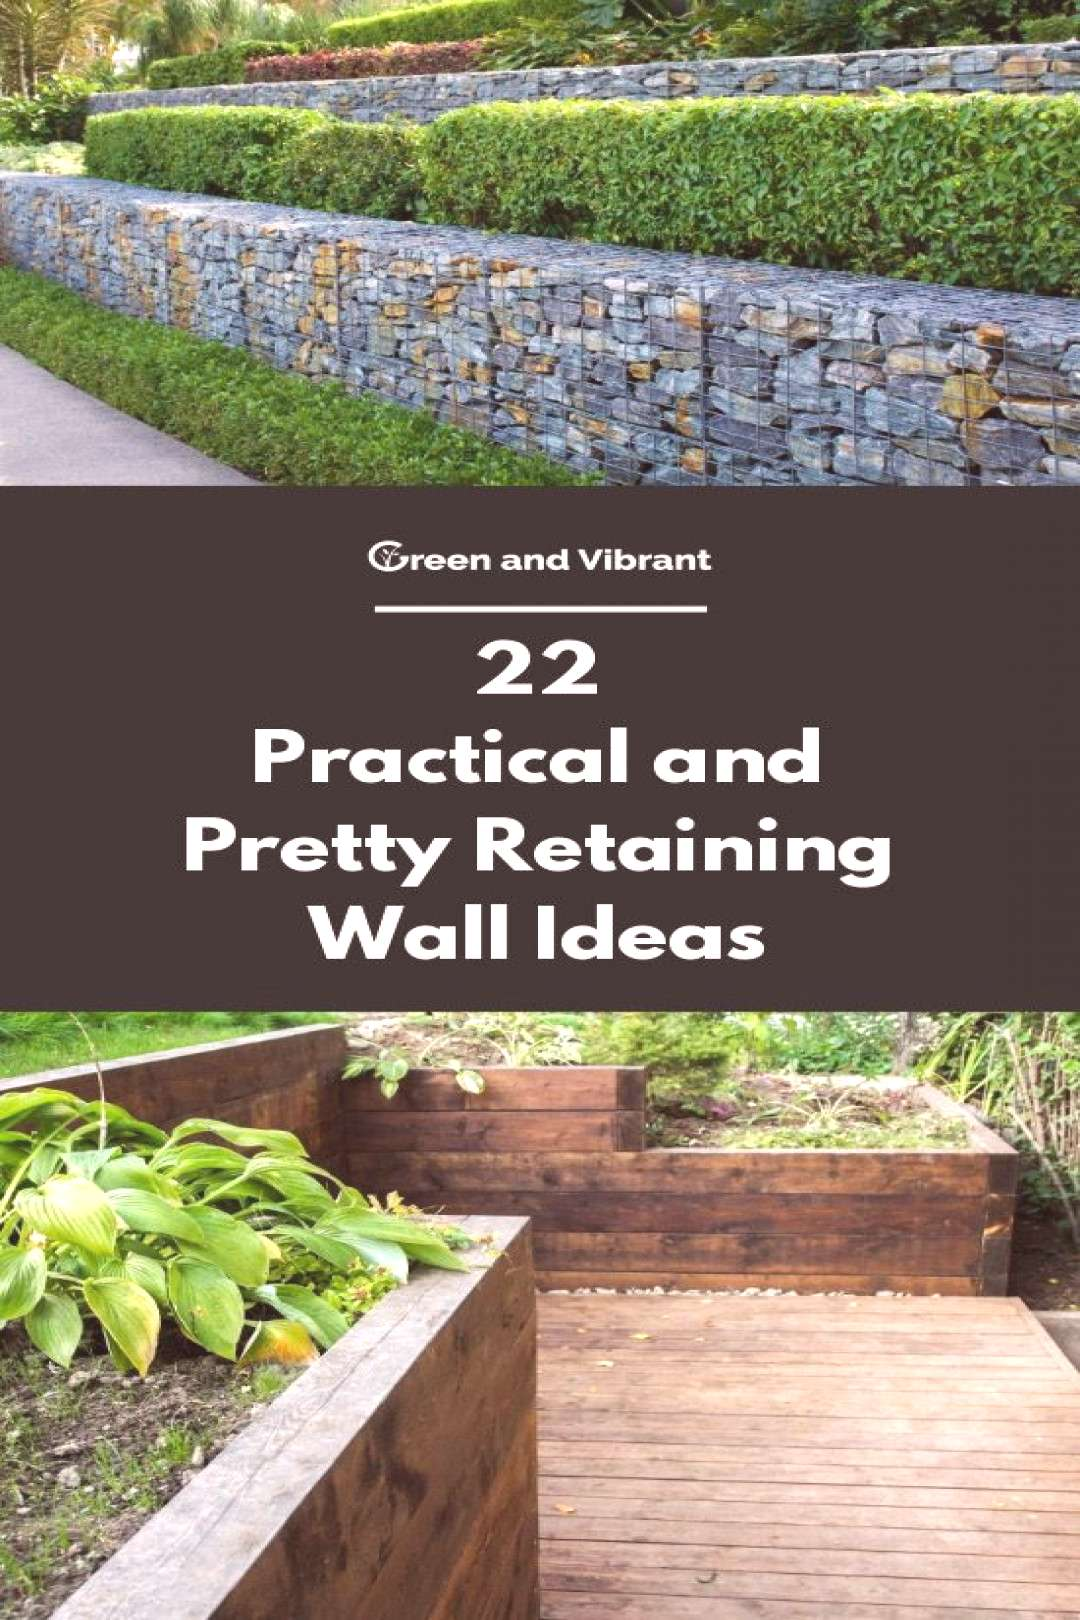 22 Practical and Pretty Retaining Wall Ideas